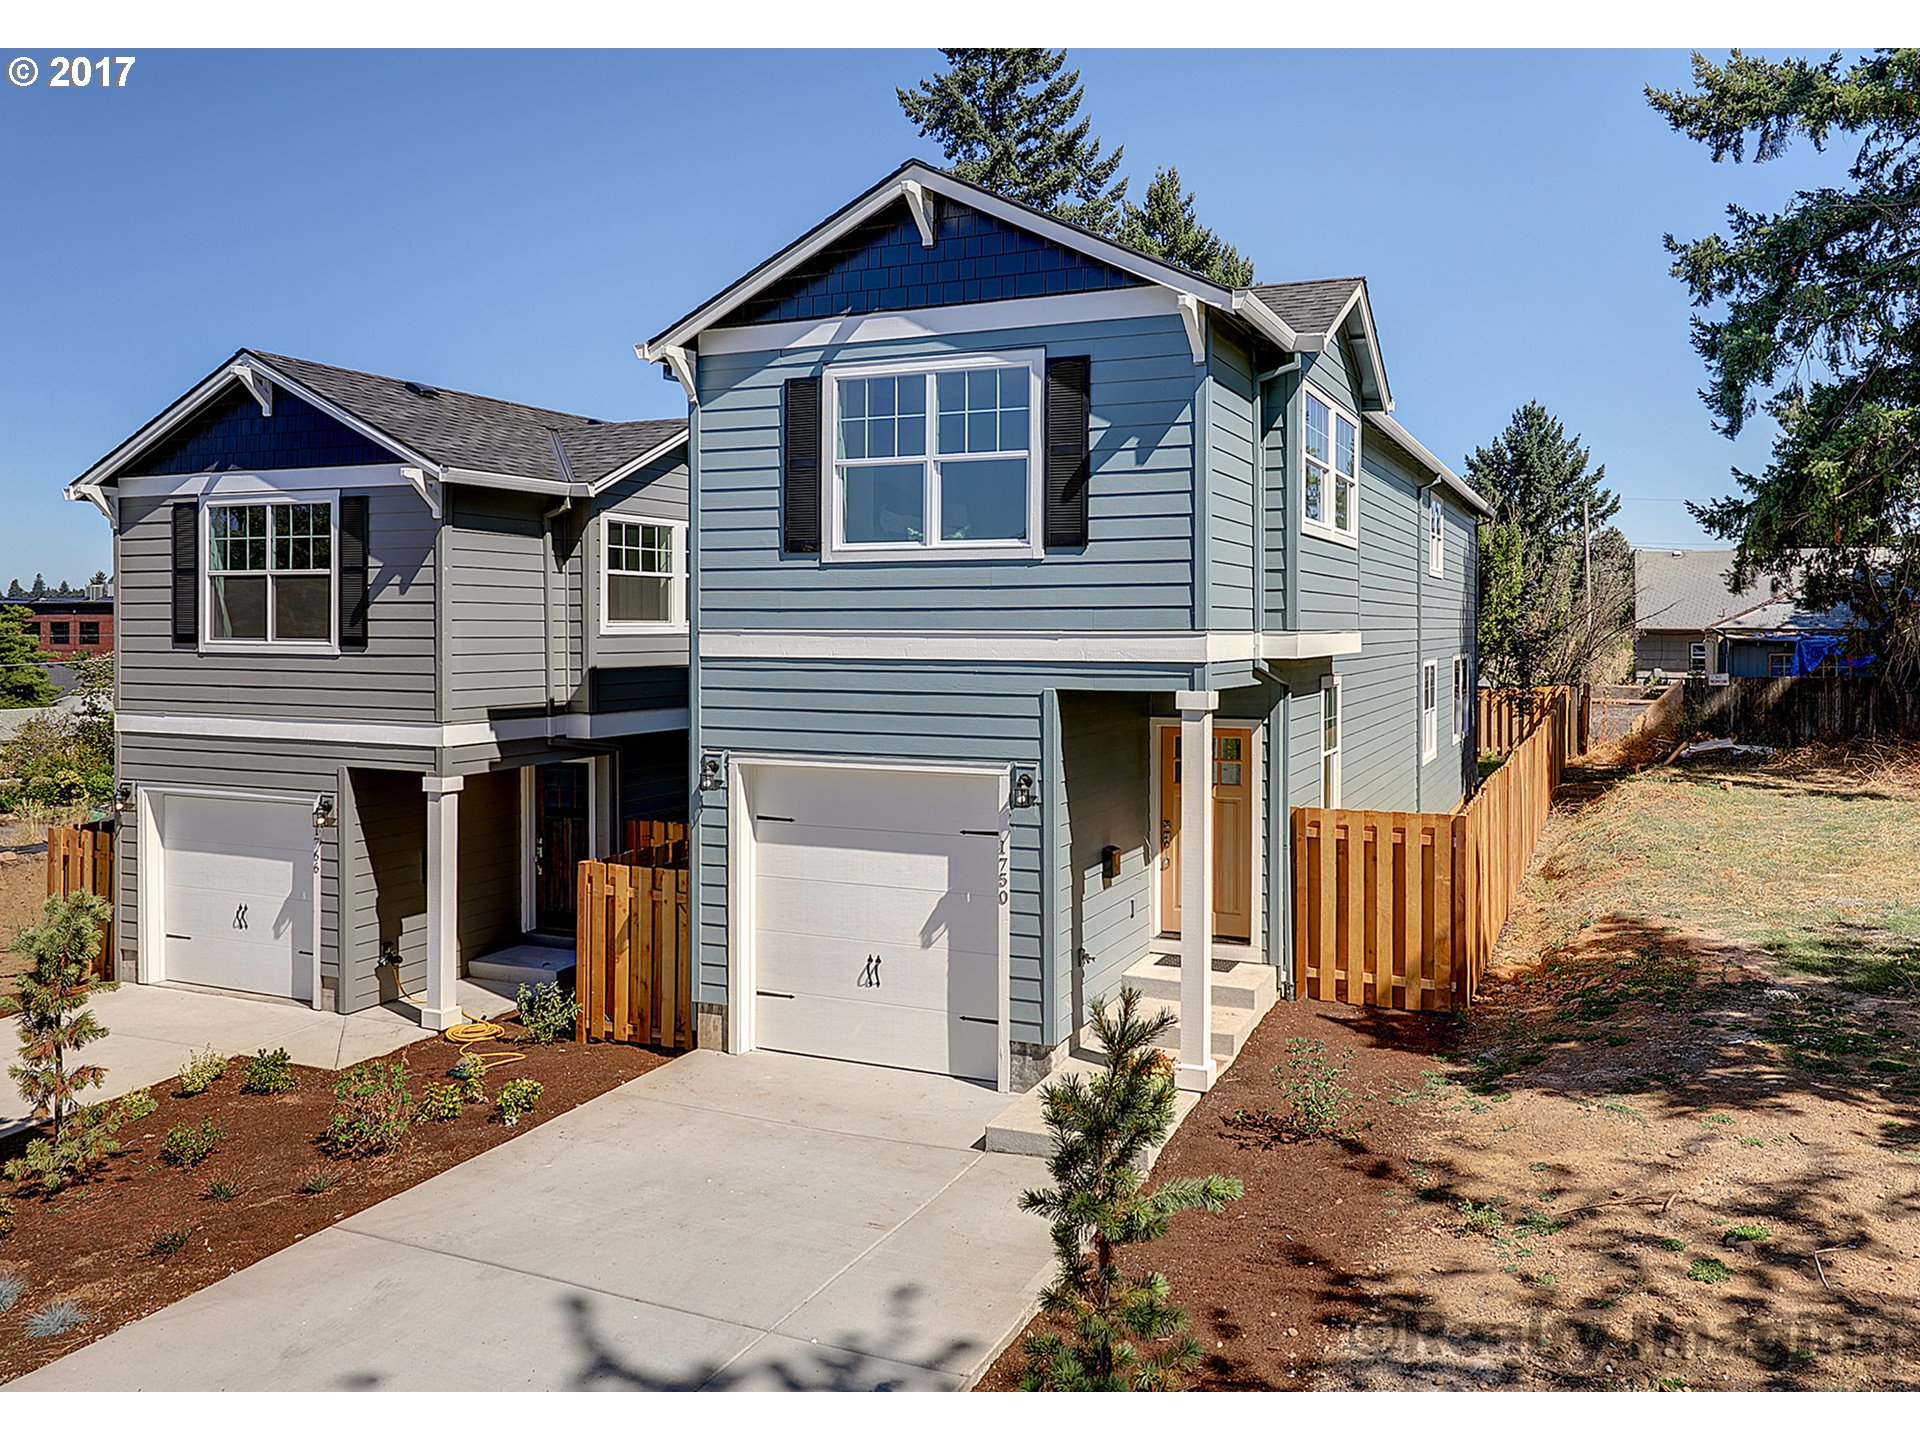 Brand new in Rose City Park! If you missed its twin next door (sold in 16 days) now is your chance! Smart flrpln w/4 bdrms & laundry up! Top shelf finishes! 9 ft ceil, cool fixtures & wood flrs; great rm concept; open fam rm/kit/dining! Gorgeous kitchen w/quartz & ss applcs; fam rm w/frplc & blt-ins; vaulted master suite; stunning tile work/lush baths; fenced yard w/patio! Walk/bike to park/golf course!